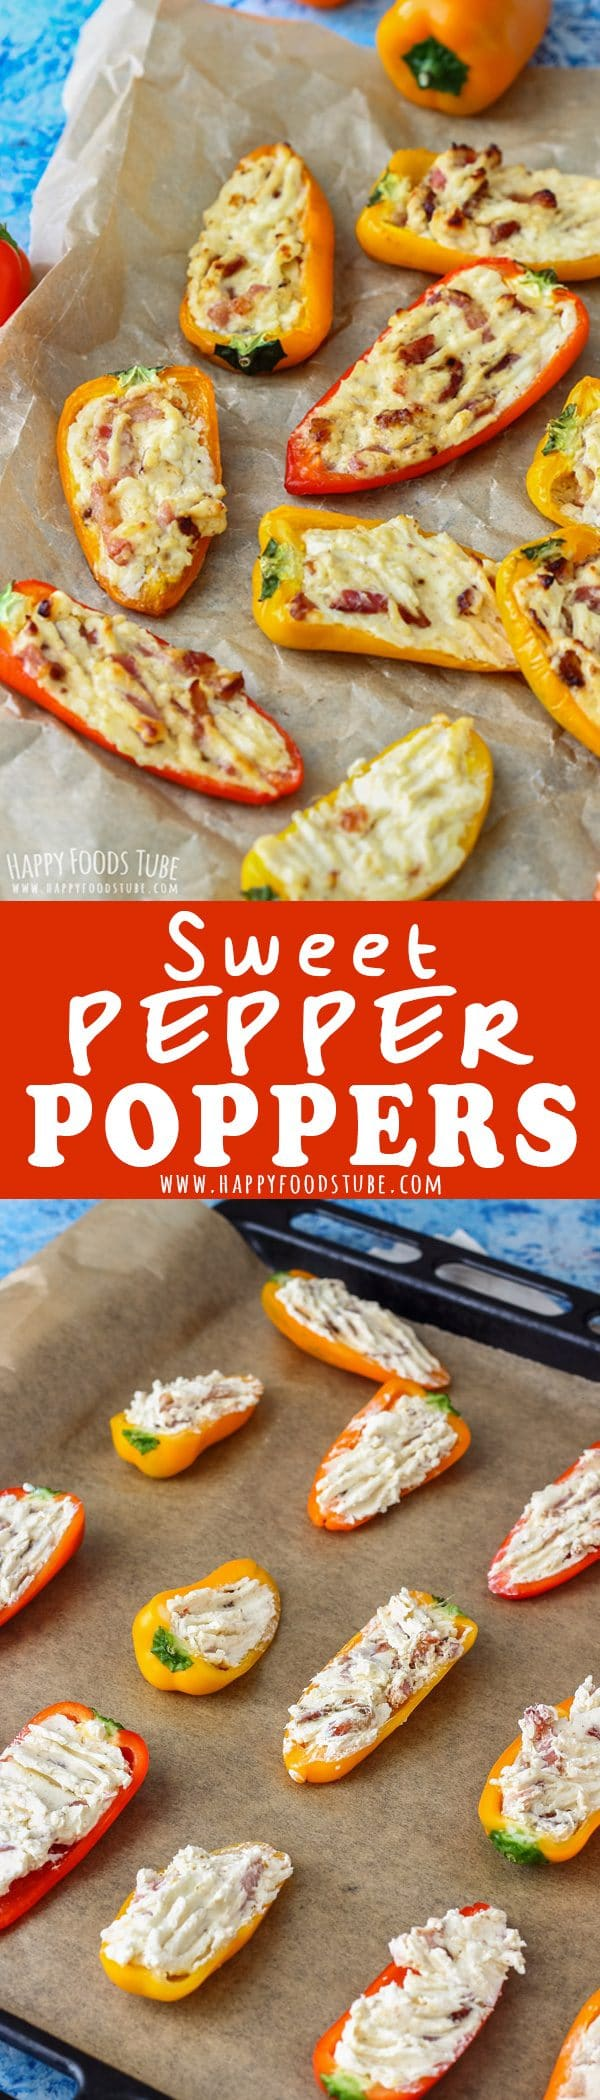 Sweet Pepper Poppers Picture Collage